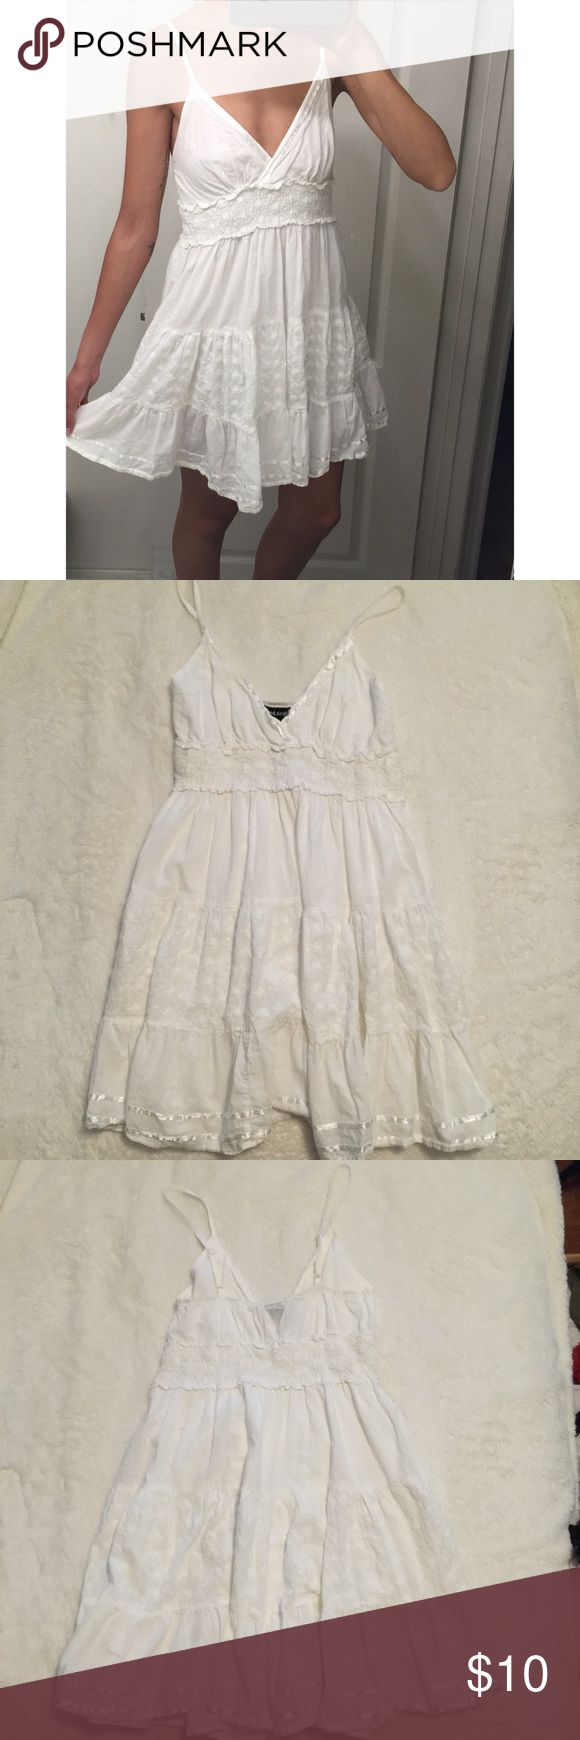 White Eyelet Dress ▪️Good Condition ▫️No trades   Brand: Wet seal Size: Medium (junior sizing) , but fits like a small so I listed this as a size Small Color: White Material: 100% cotton Care: machine wash Retail: $25 Adjustable straps Fully lined ✨   Tags: Nasty gal Forever 21 Free People Forever 21 Missguided Zara H&M Tobi Wet Seal Dresses